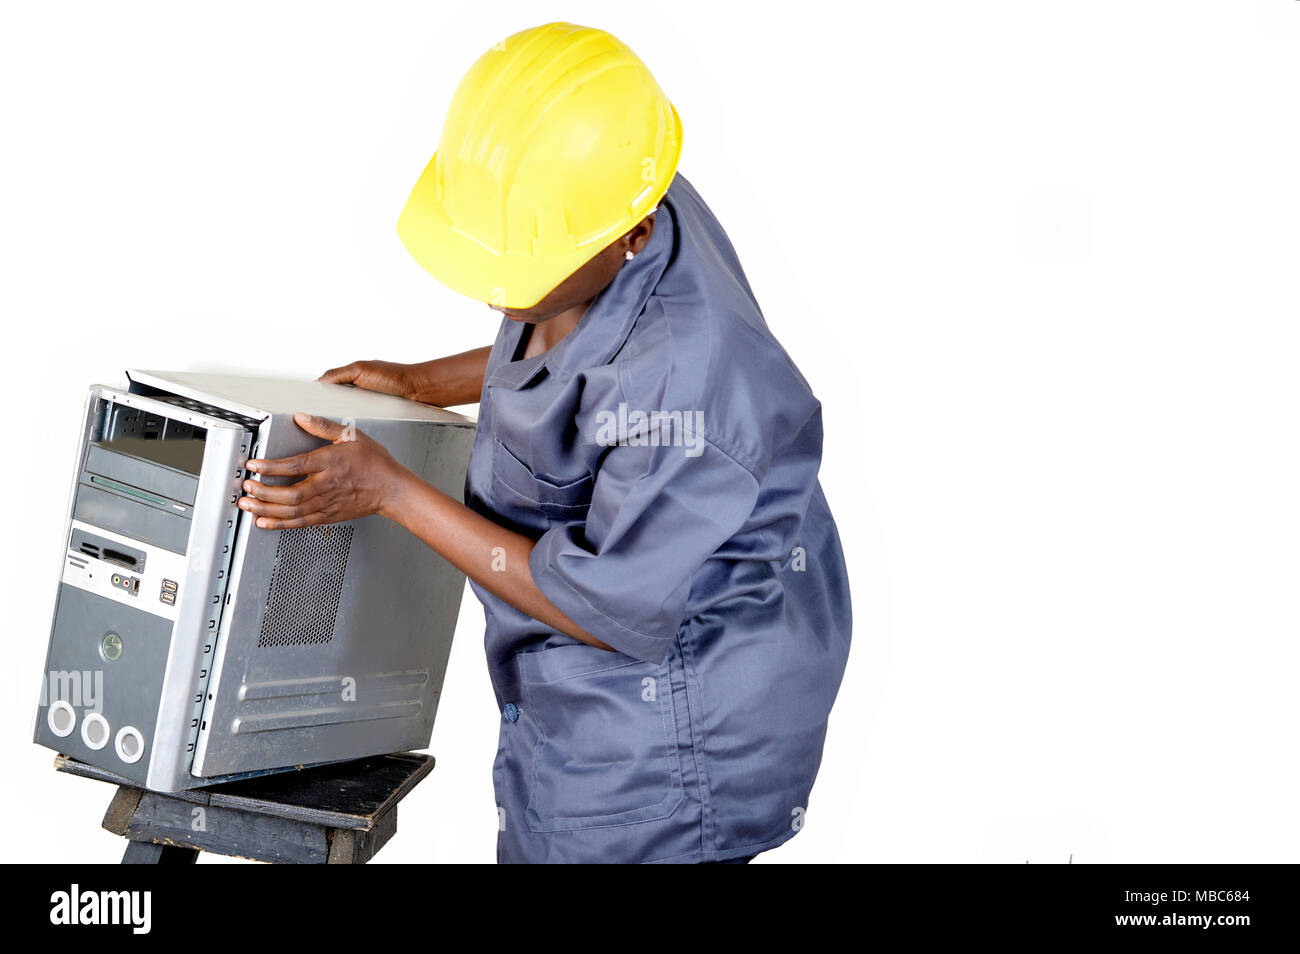 Young computer maintenance technician opens a desktop computer to locate the breakdown. - Stock Image